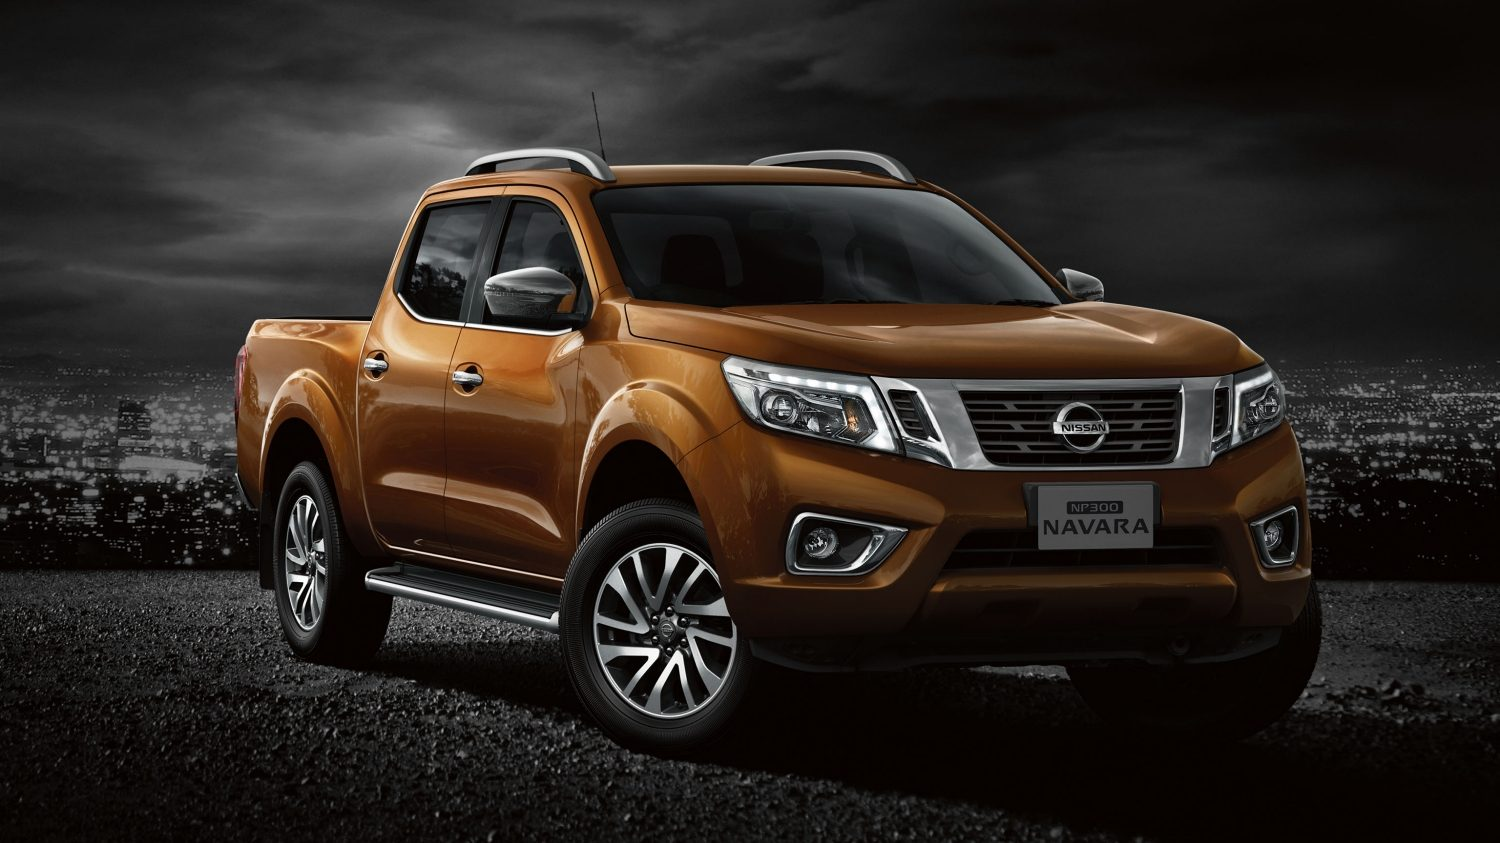 Preisgekrönt: Der NISSAN NAVARA gewinnt den internationalen Pick-up Award 2016*